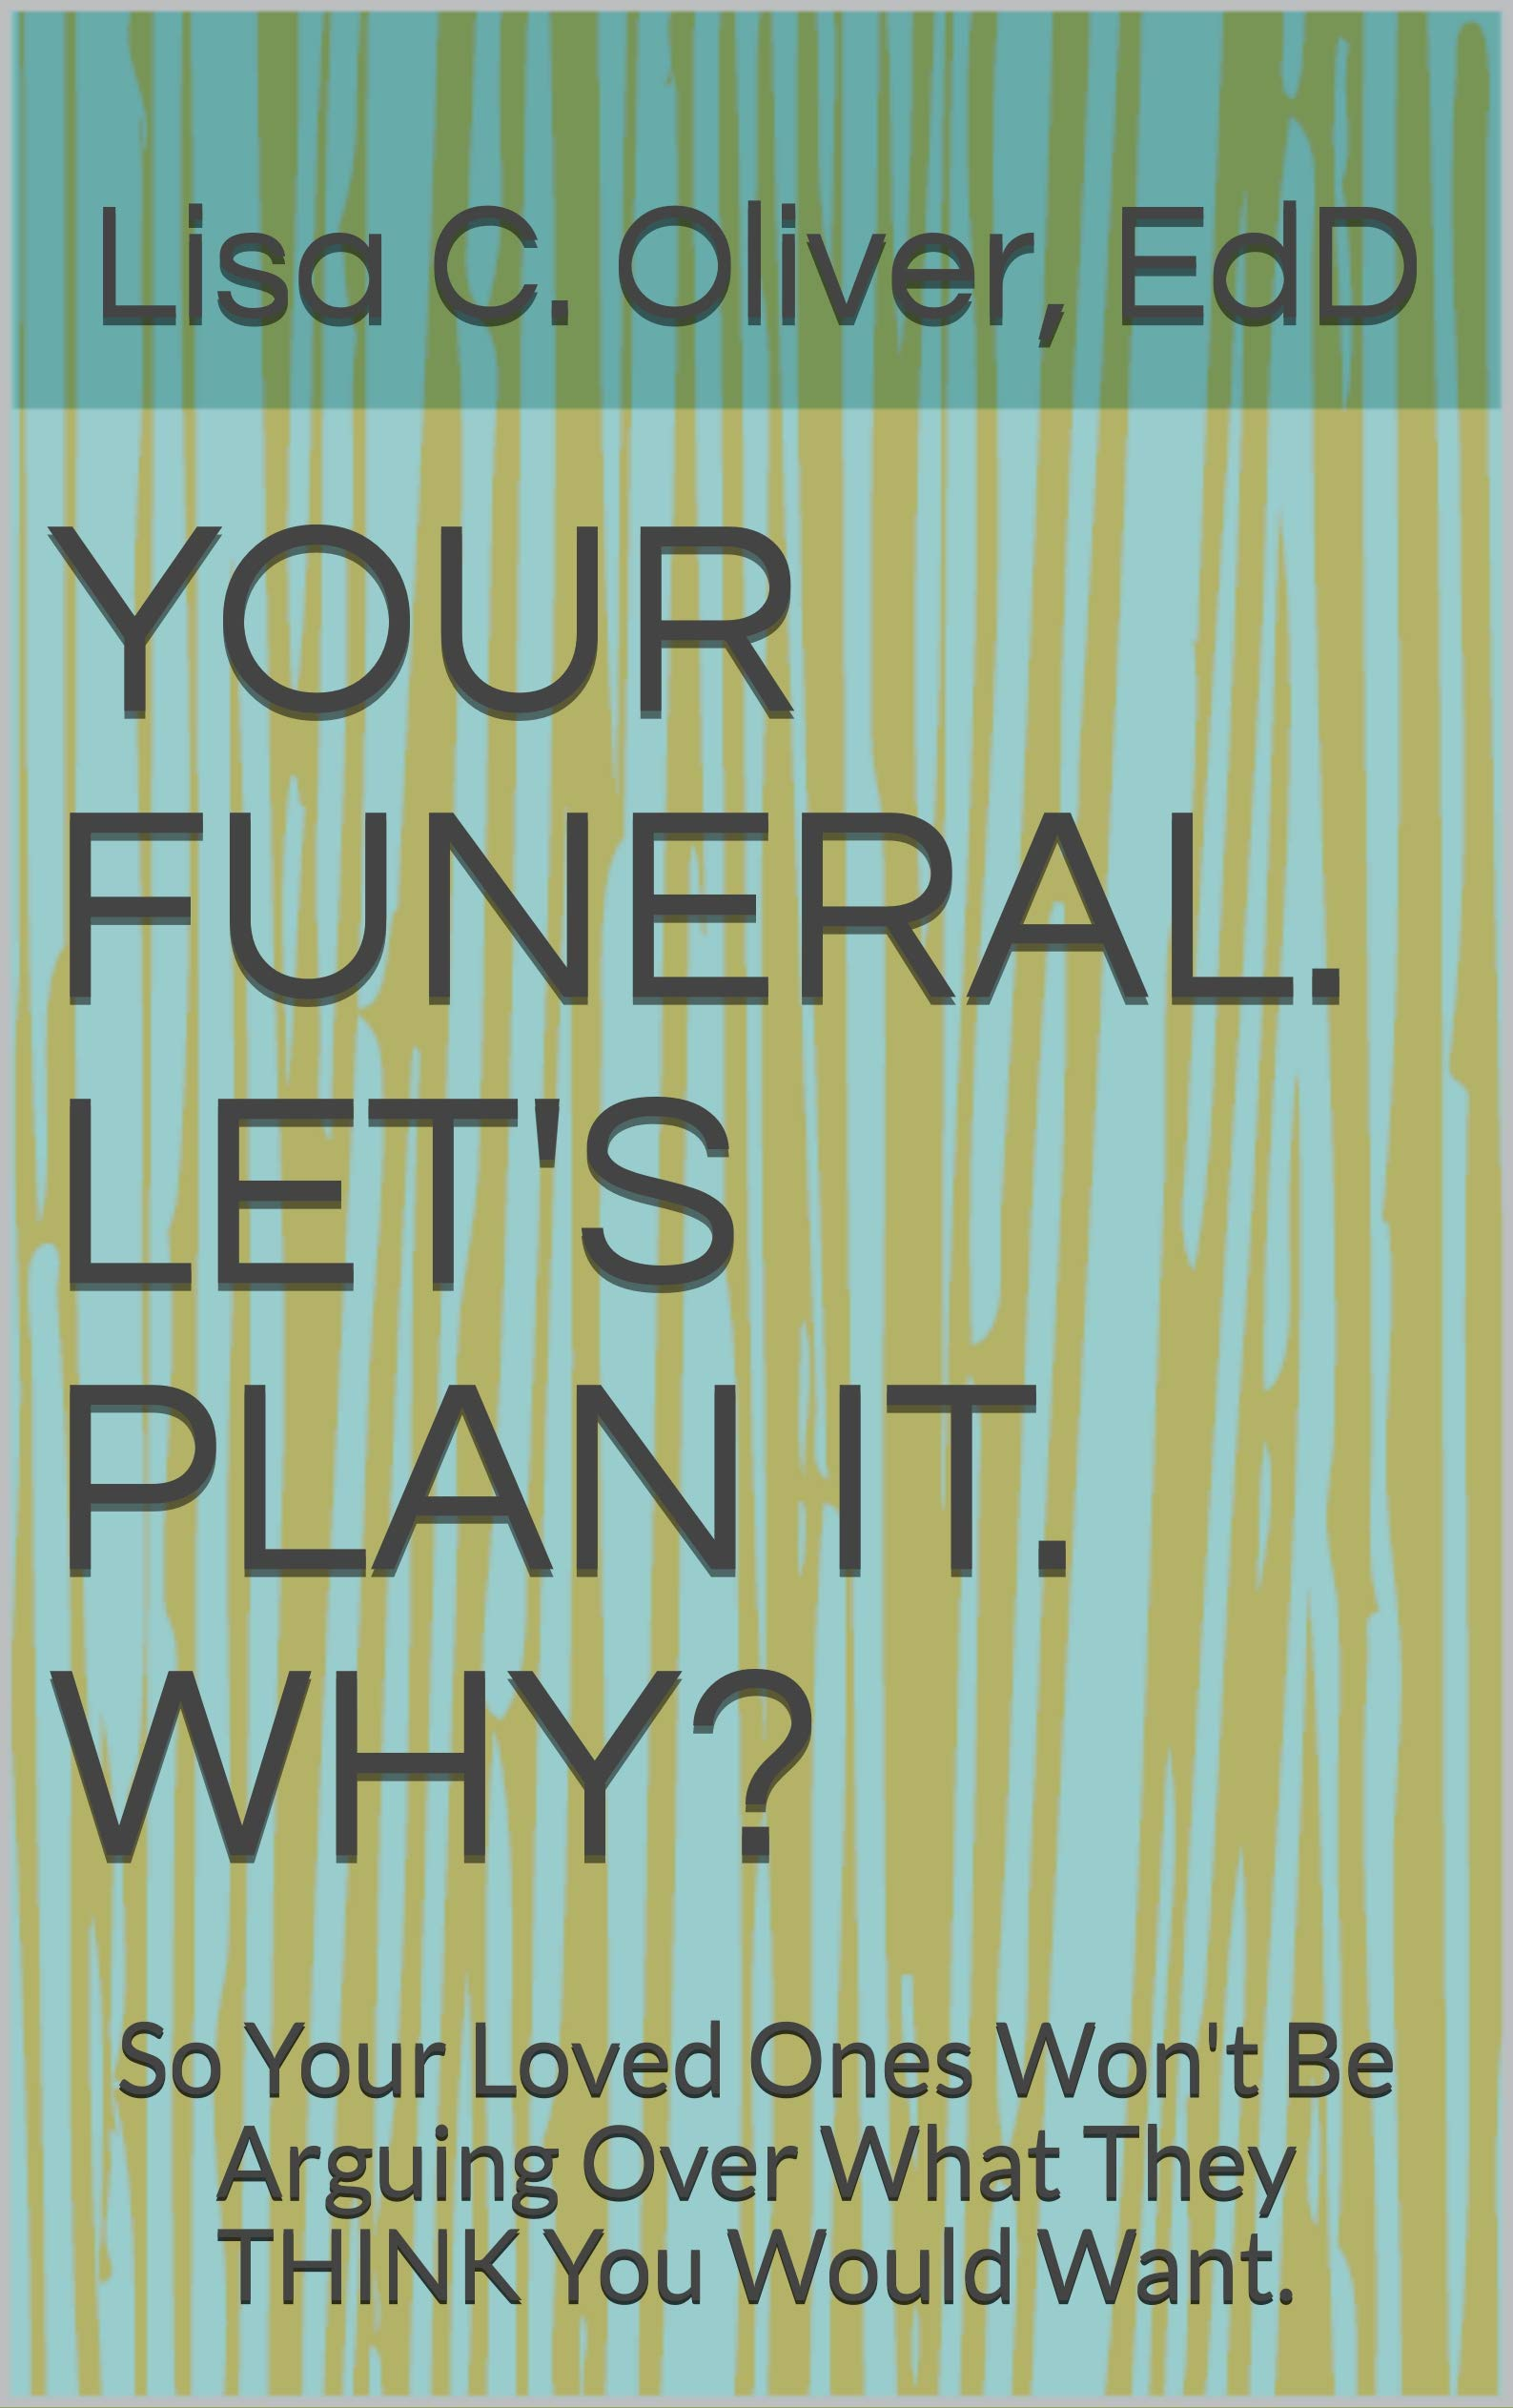 YOUR FUNERAL. LET'S PLAN IT. WHY?: So Your Loved Ones Won't Be Arguing Over What They THINK You Would Want.